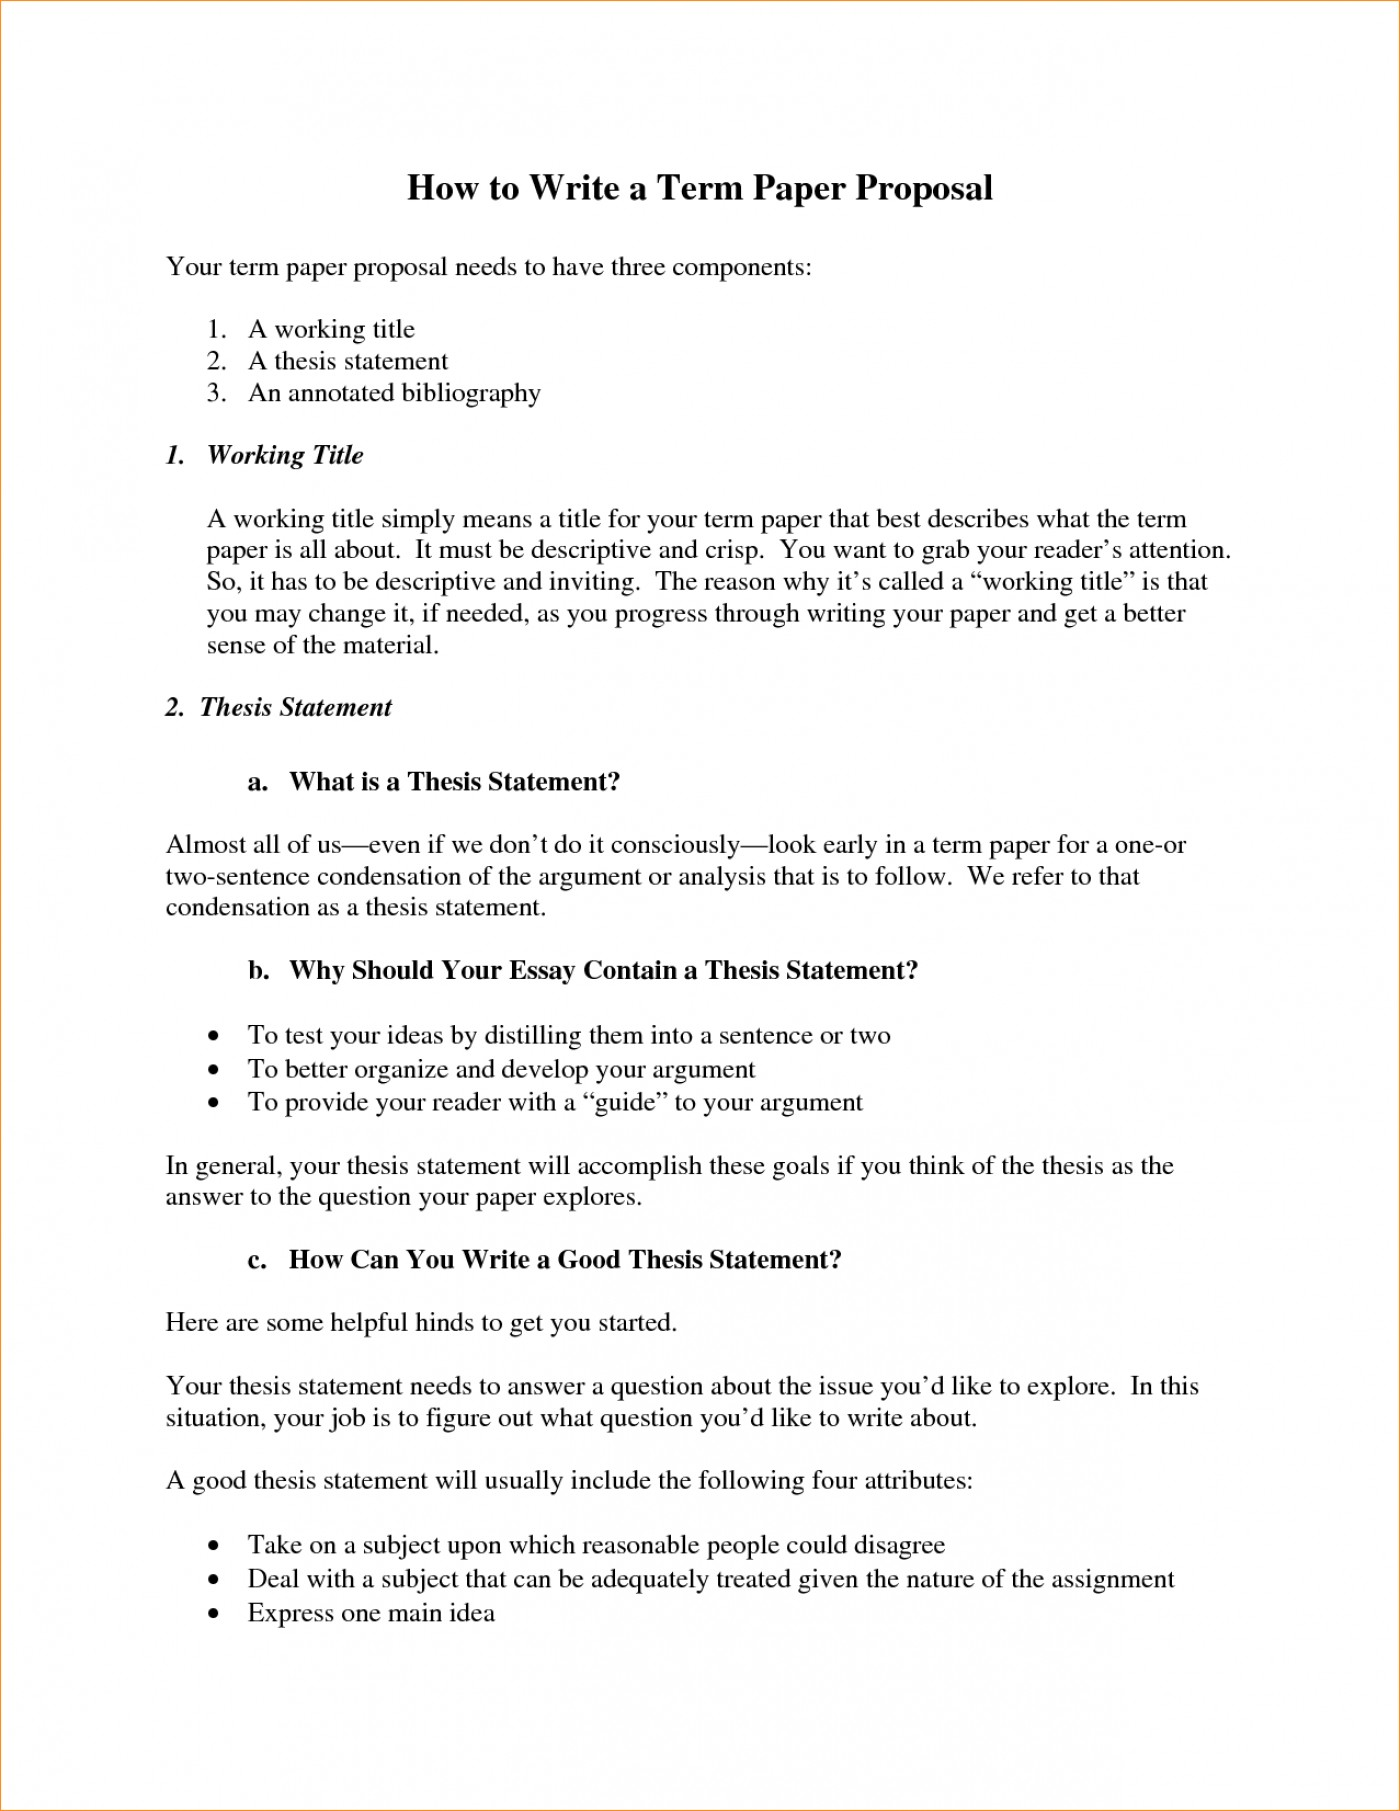 how to write a proposal for term paper